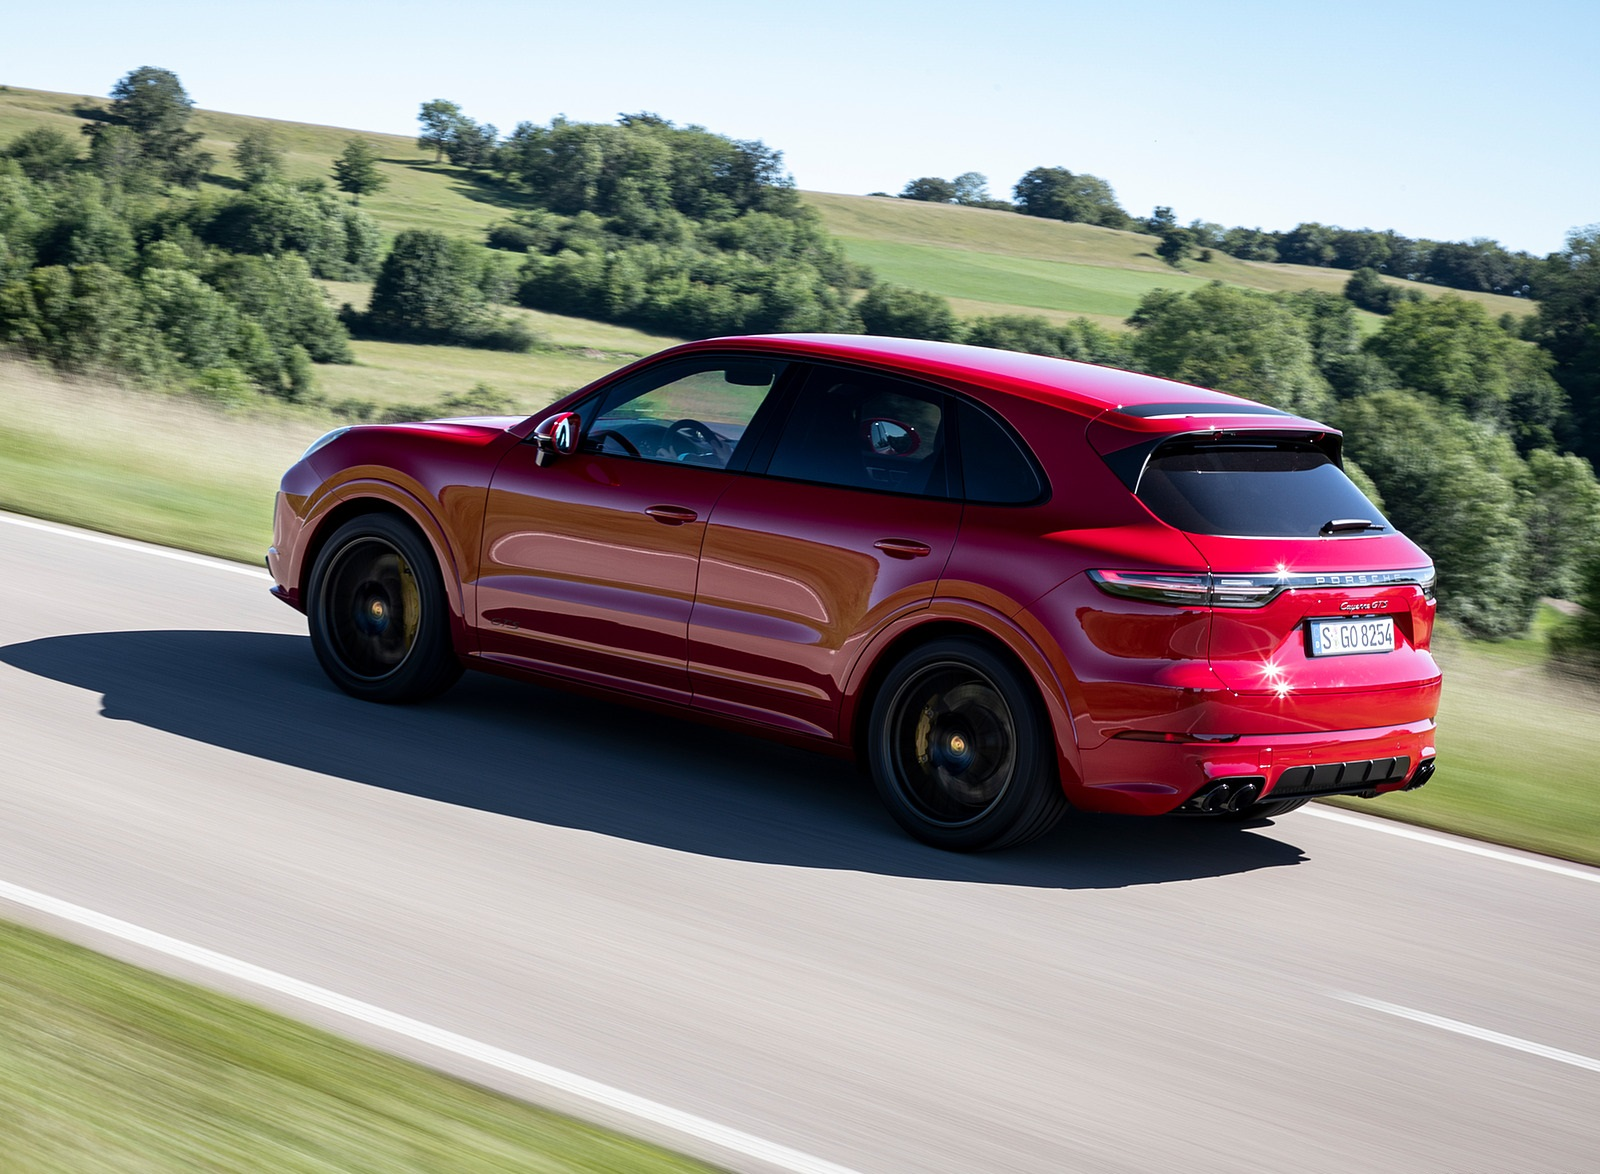 2021 Porsche Cayenne Gts Color Carmine Red Rear Three Quarter Wallpapers 7 Newcarcars